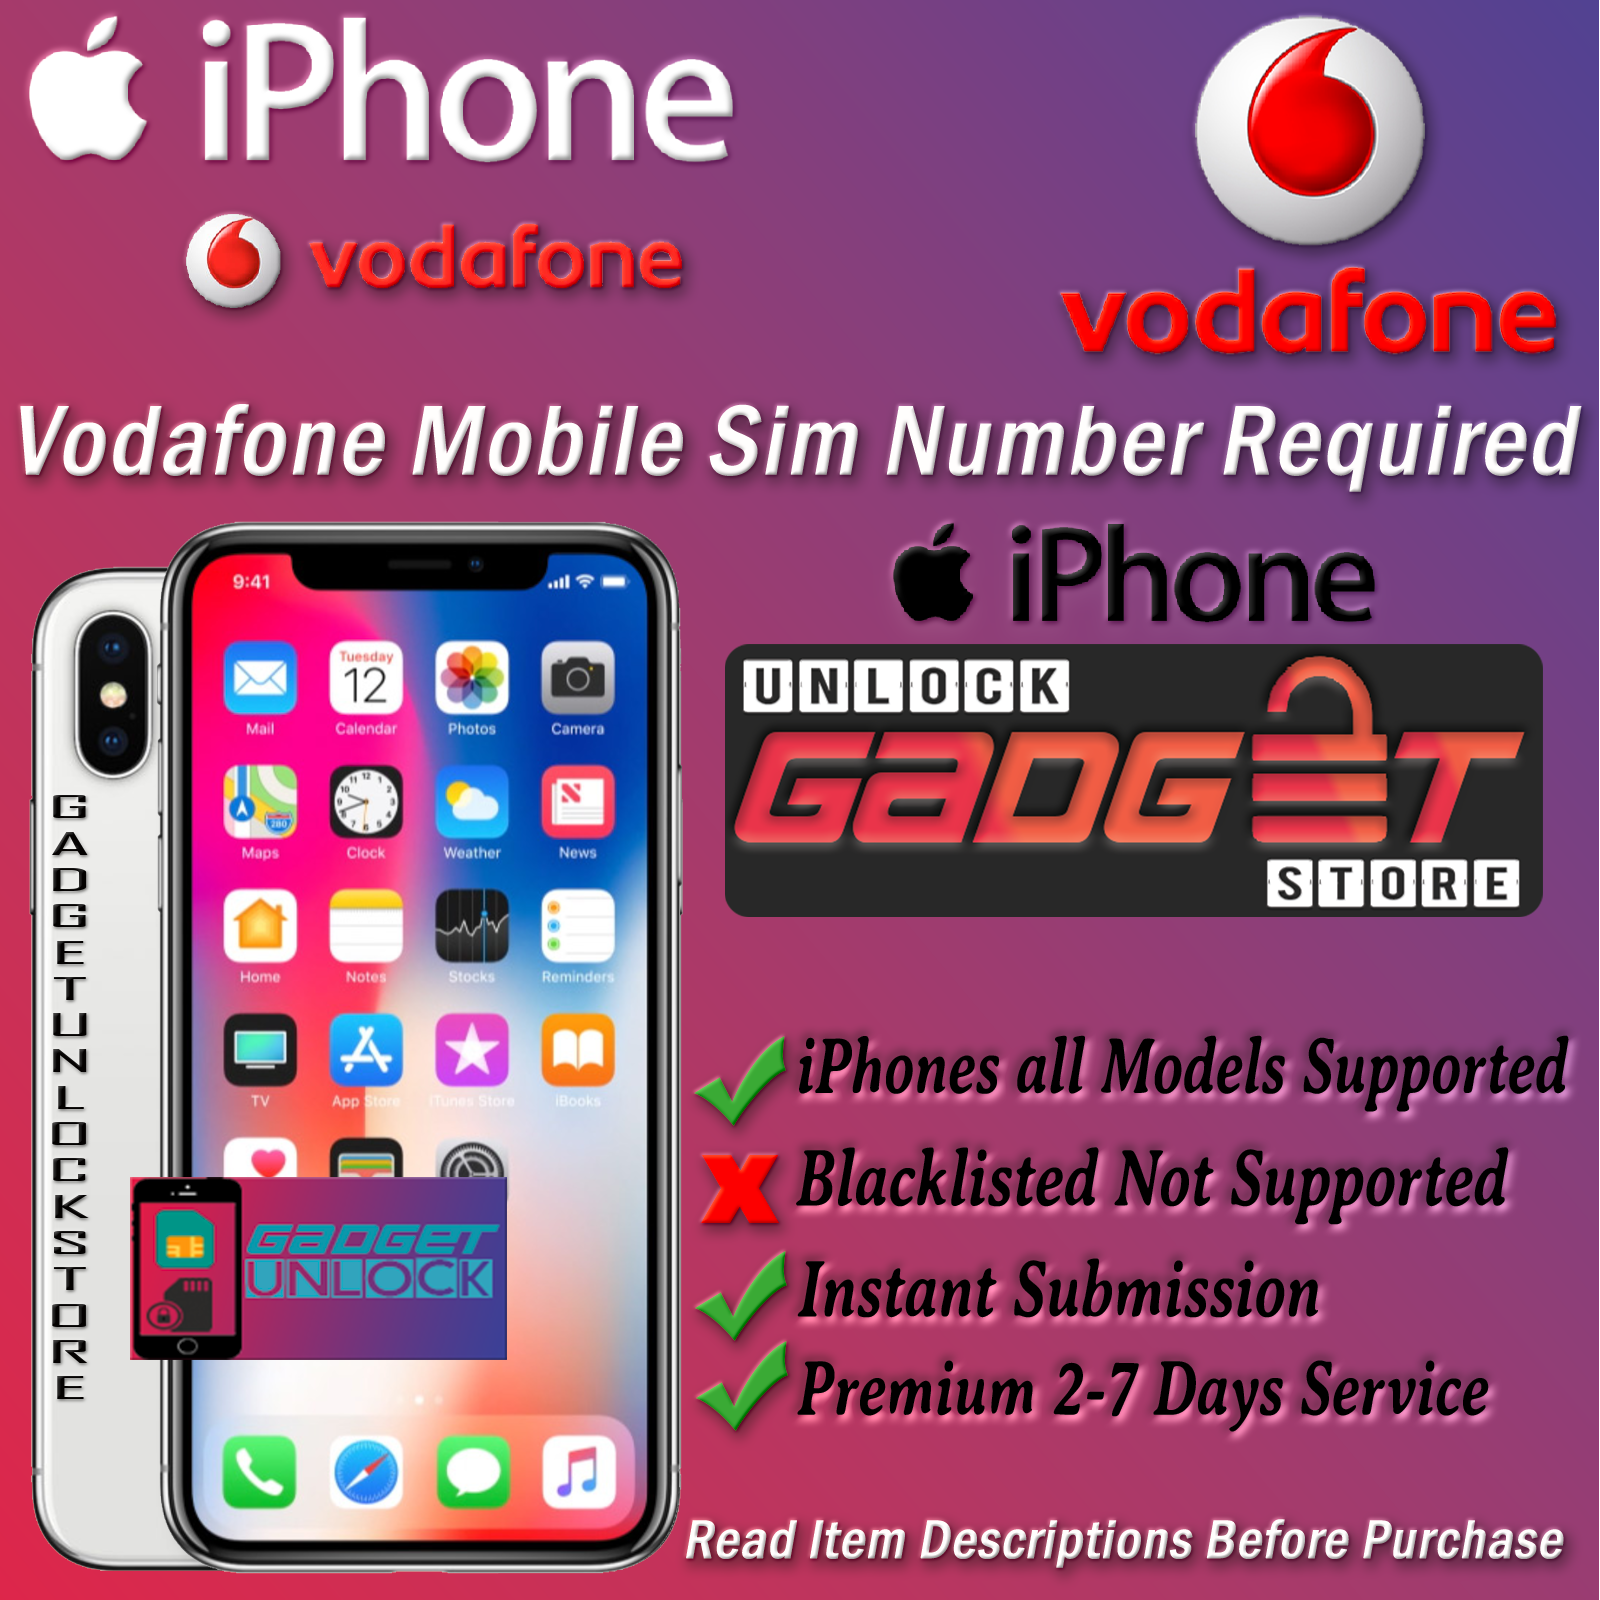 Unlock Service For iPhone 4 5 5S 5C SE 6 6S 7 8 X XS XR 11 Max Pro Vodafone UK 4